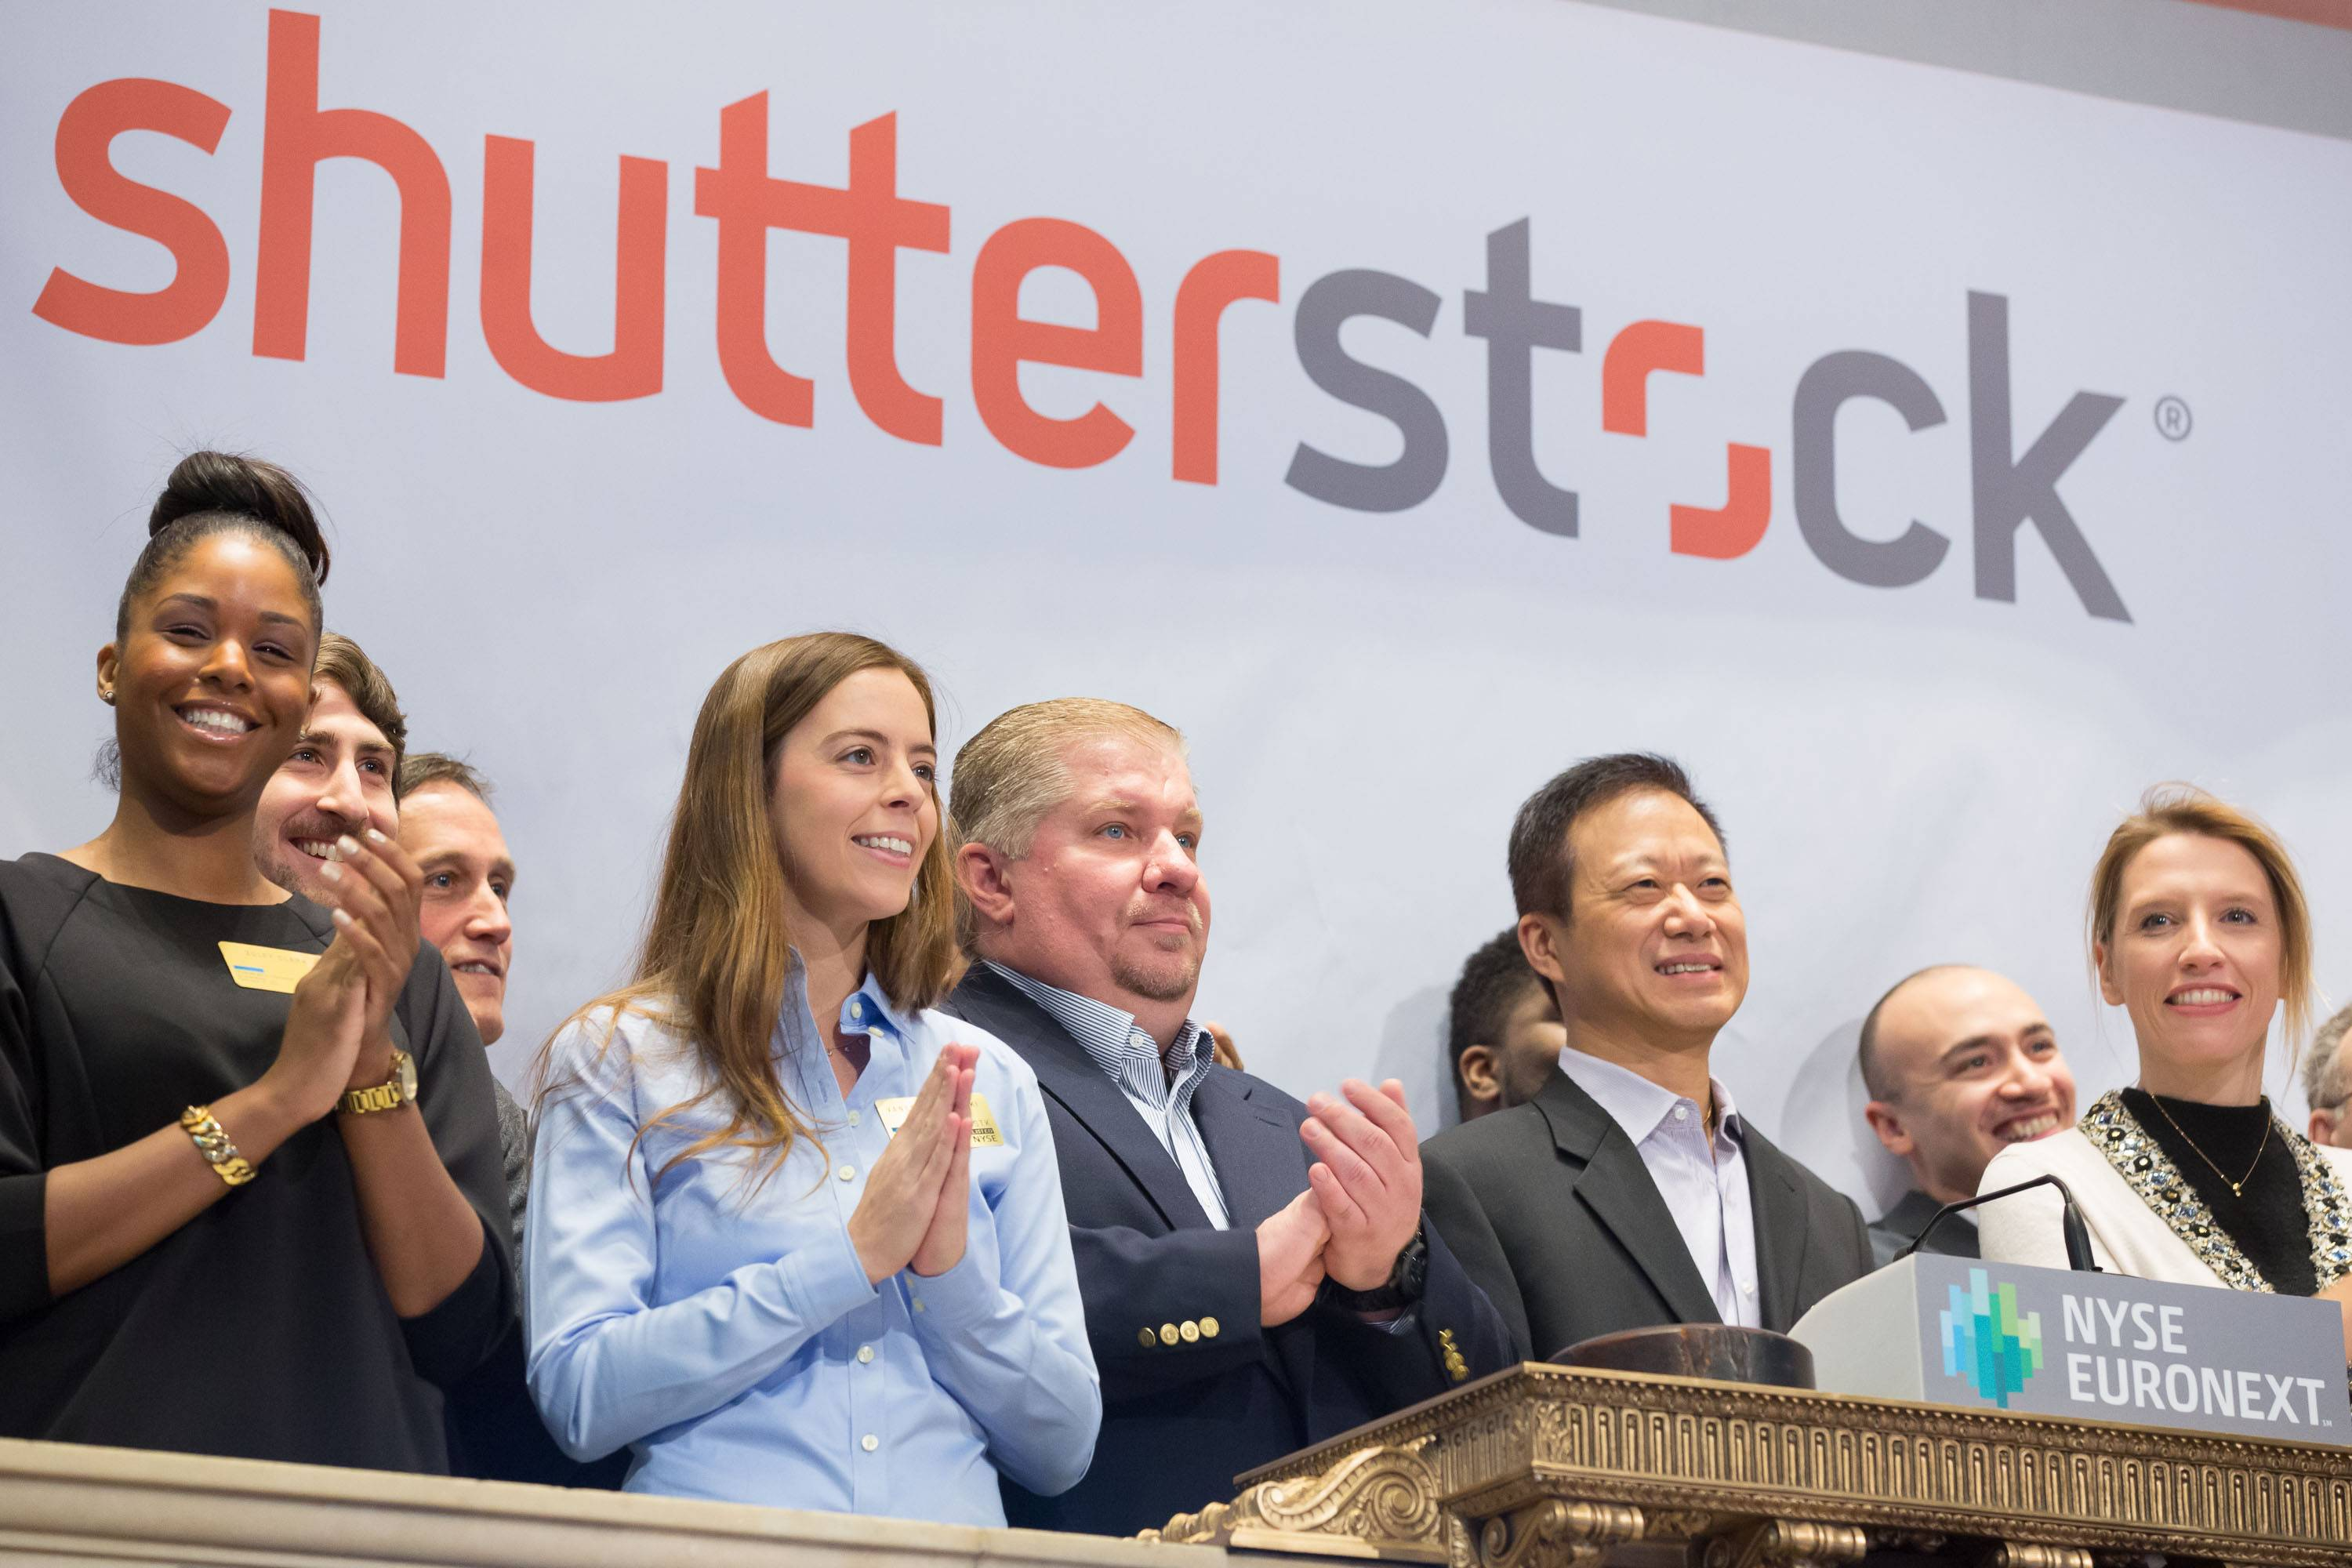 Shutterstock's Chief Technology Officer, James Chou, joined by members of the company's leadership team and Fast Company's Associate Editor, J.J. McCorvey rings the opening bell at The New York Stock Exchange in New York City.